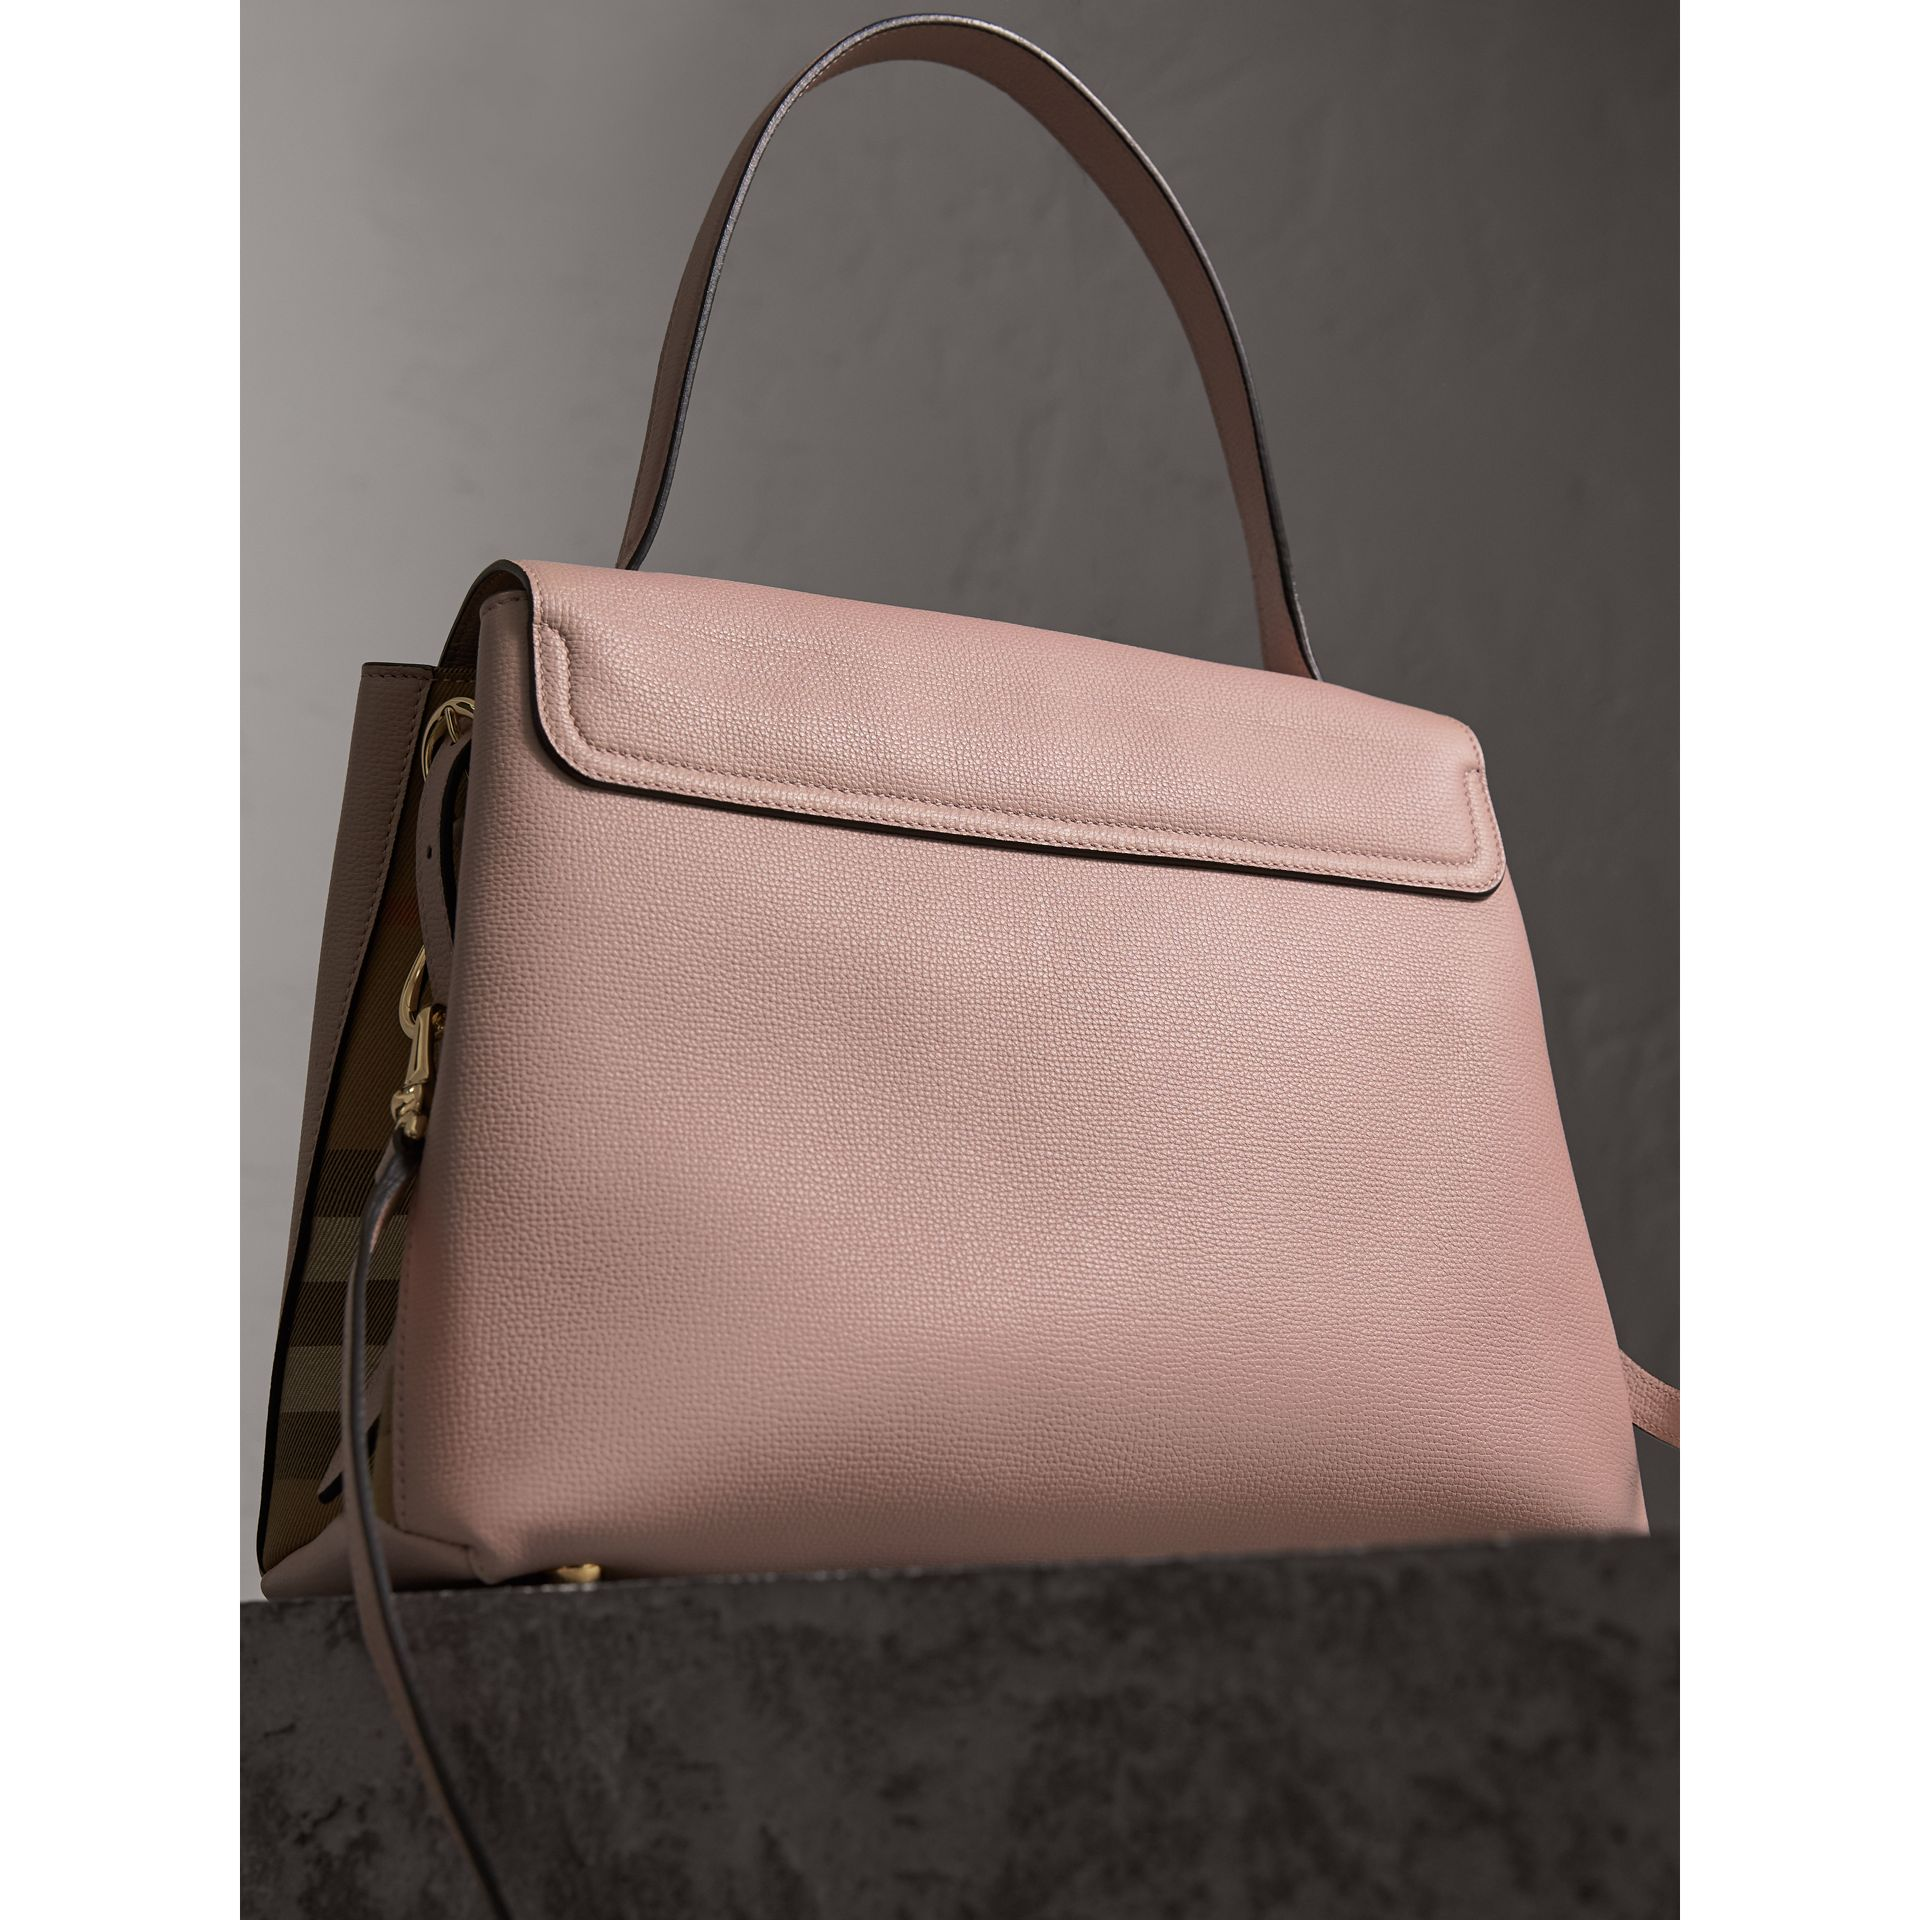 Medium Grainy Leather and House Check Tote Bag in Pale Orchid - Women | Burberry Canada - gallery image 4